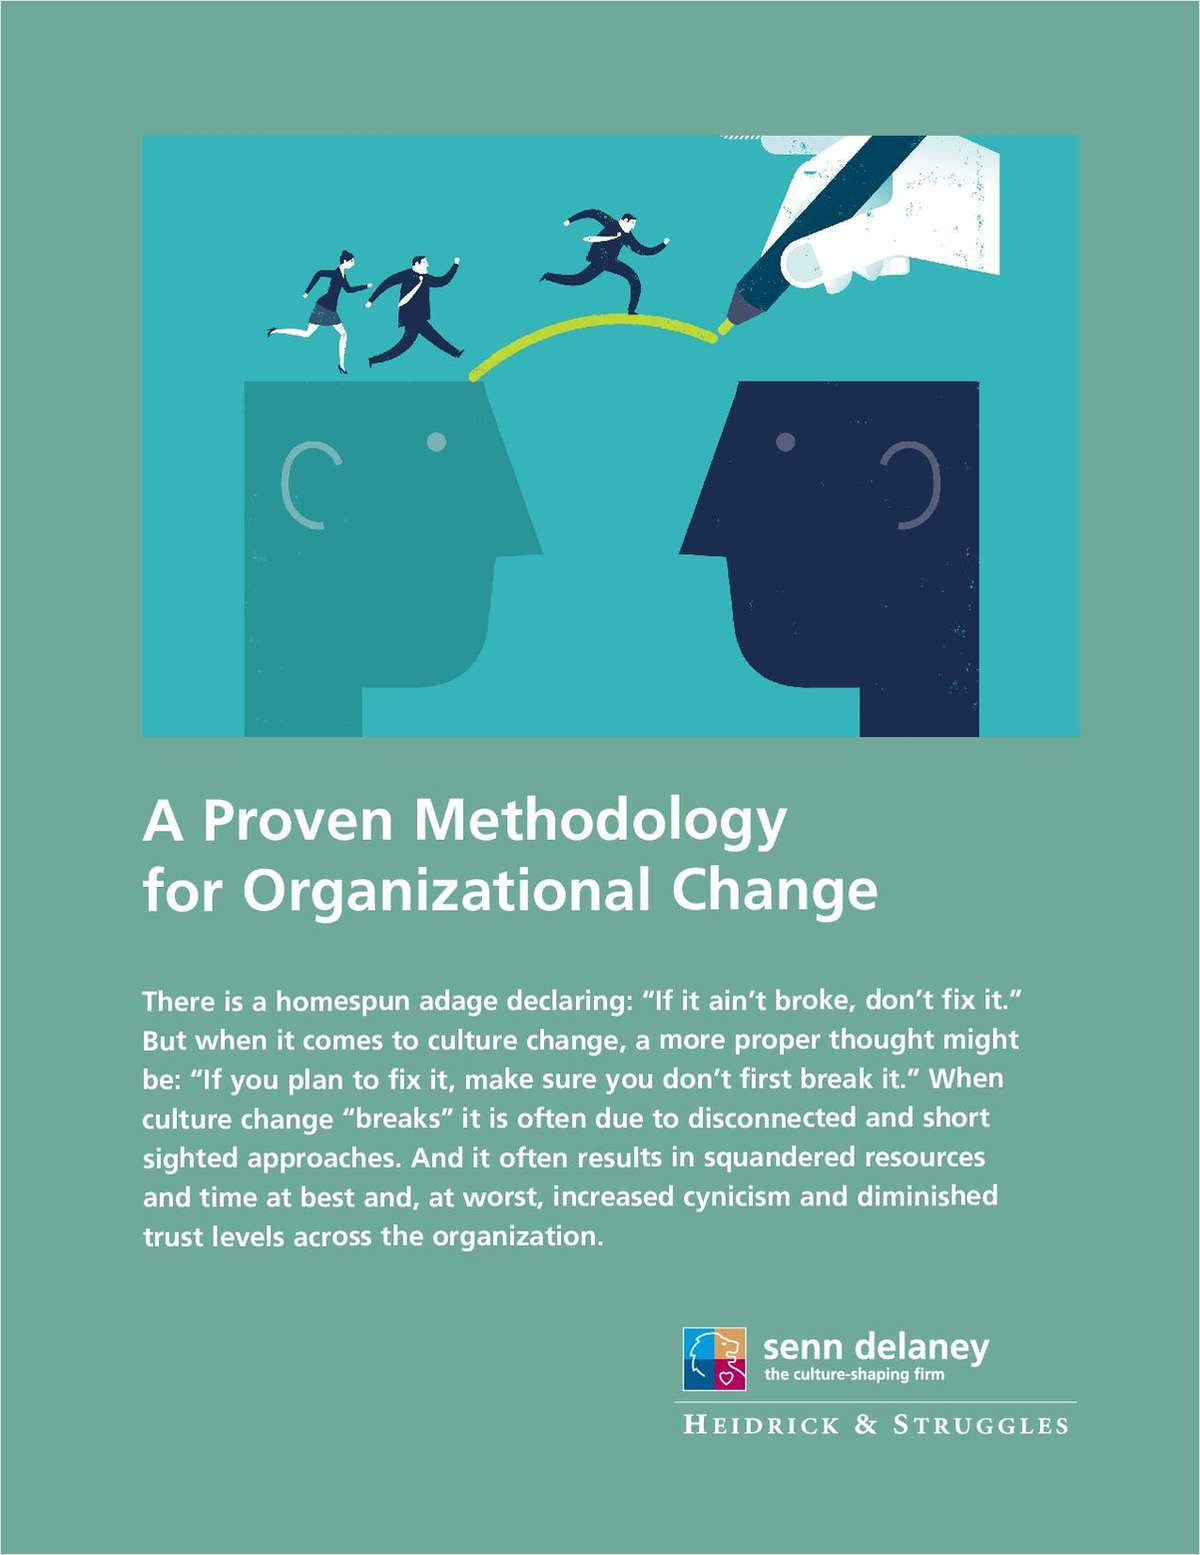 A Proven Methodology for Organizational Change